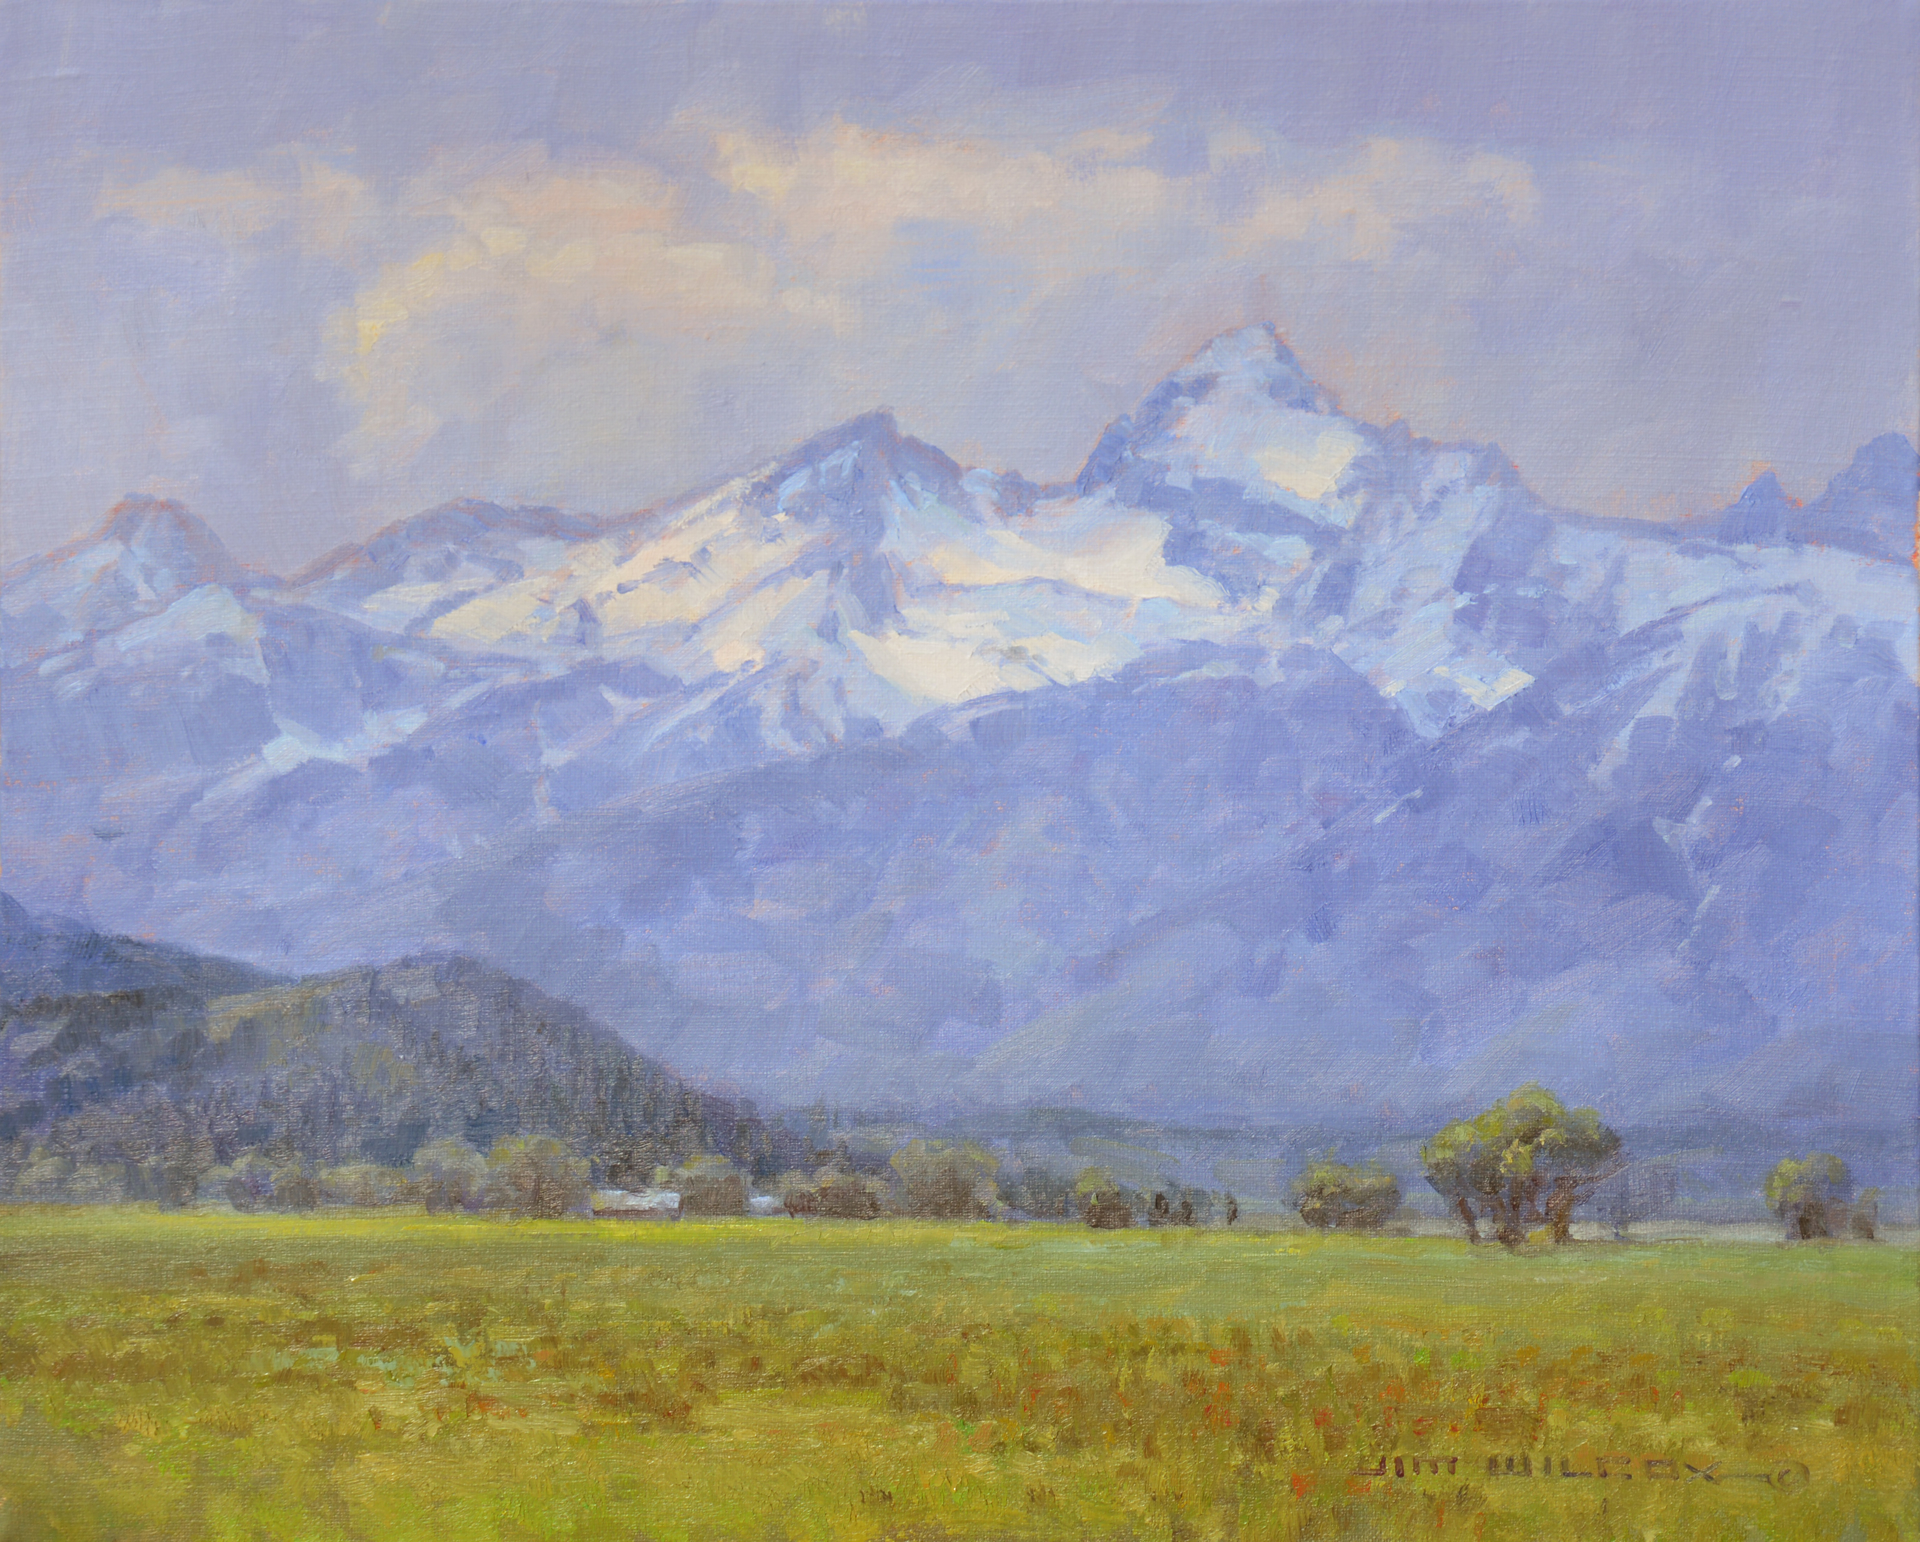 Spring in the Valley by Jim Wilcox